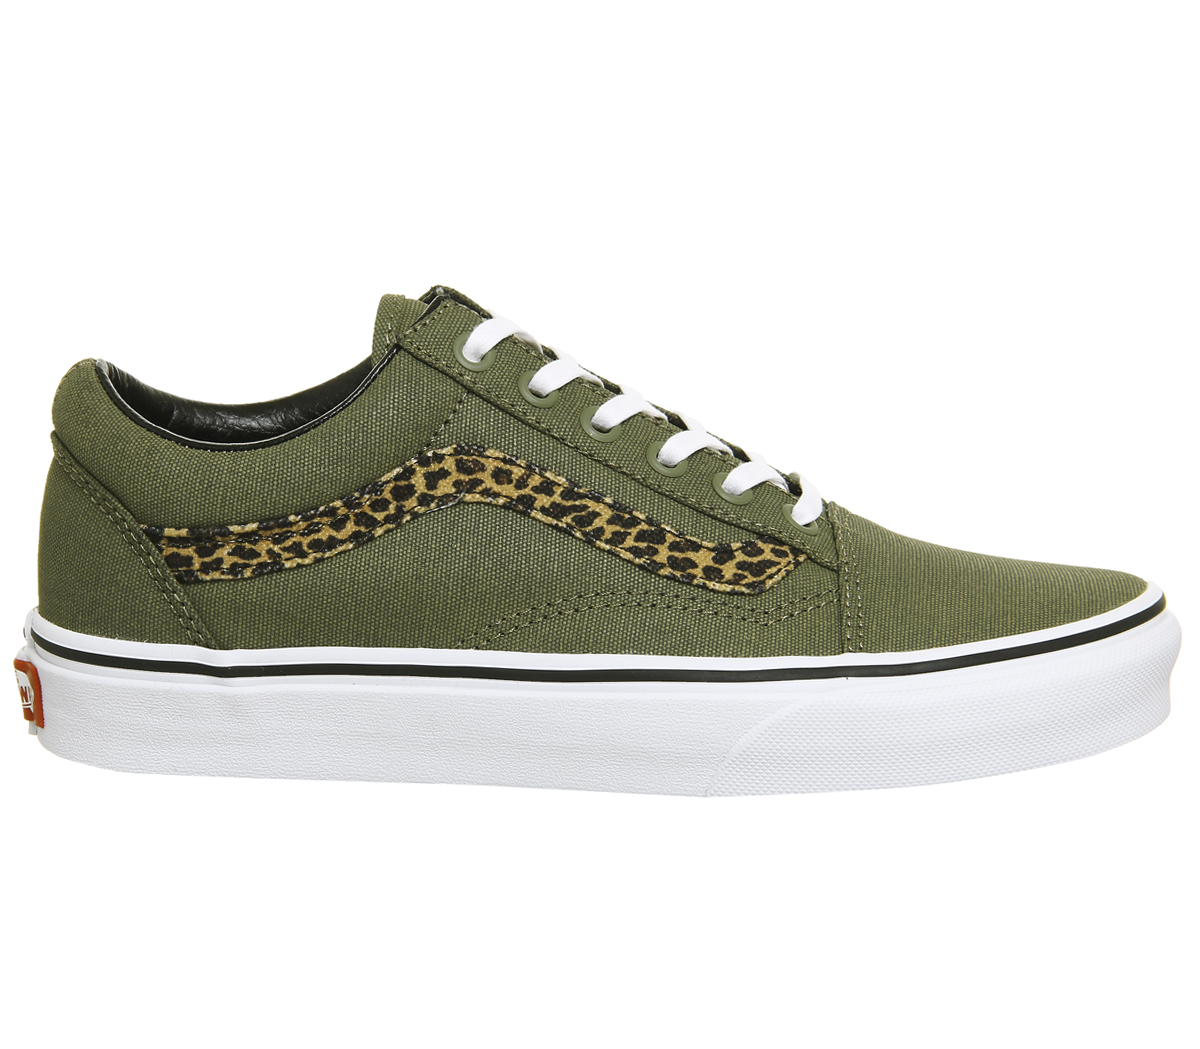 93b9c73c182 Sentinel Womens Vans Old Skool Trainers MINI LEOPARD ARMY GREEN WHITE  Trainers Shoes